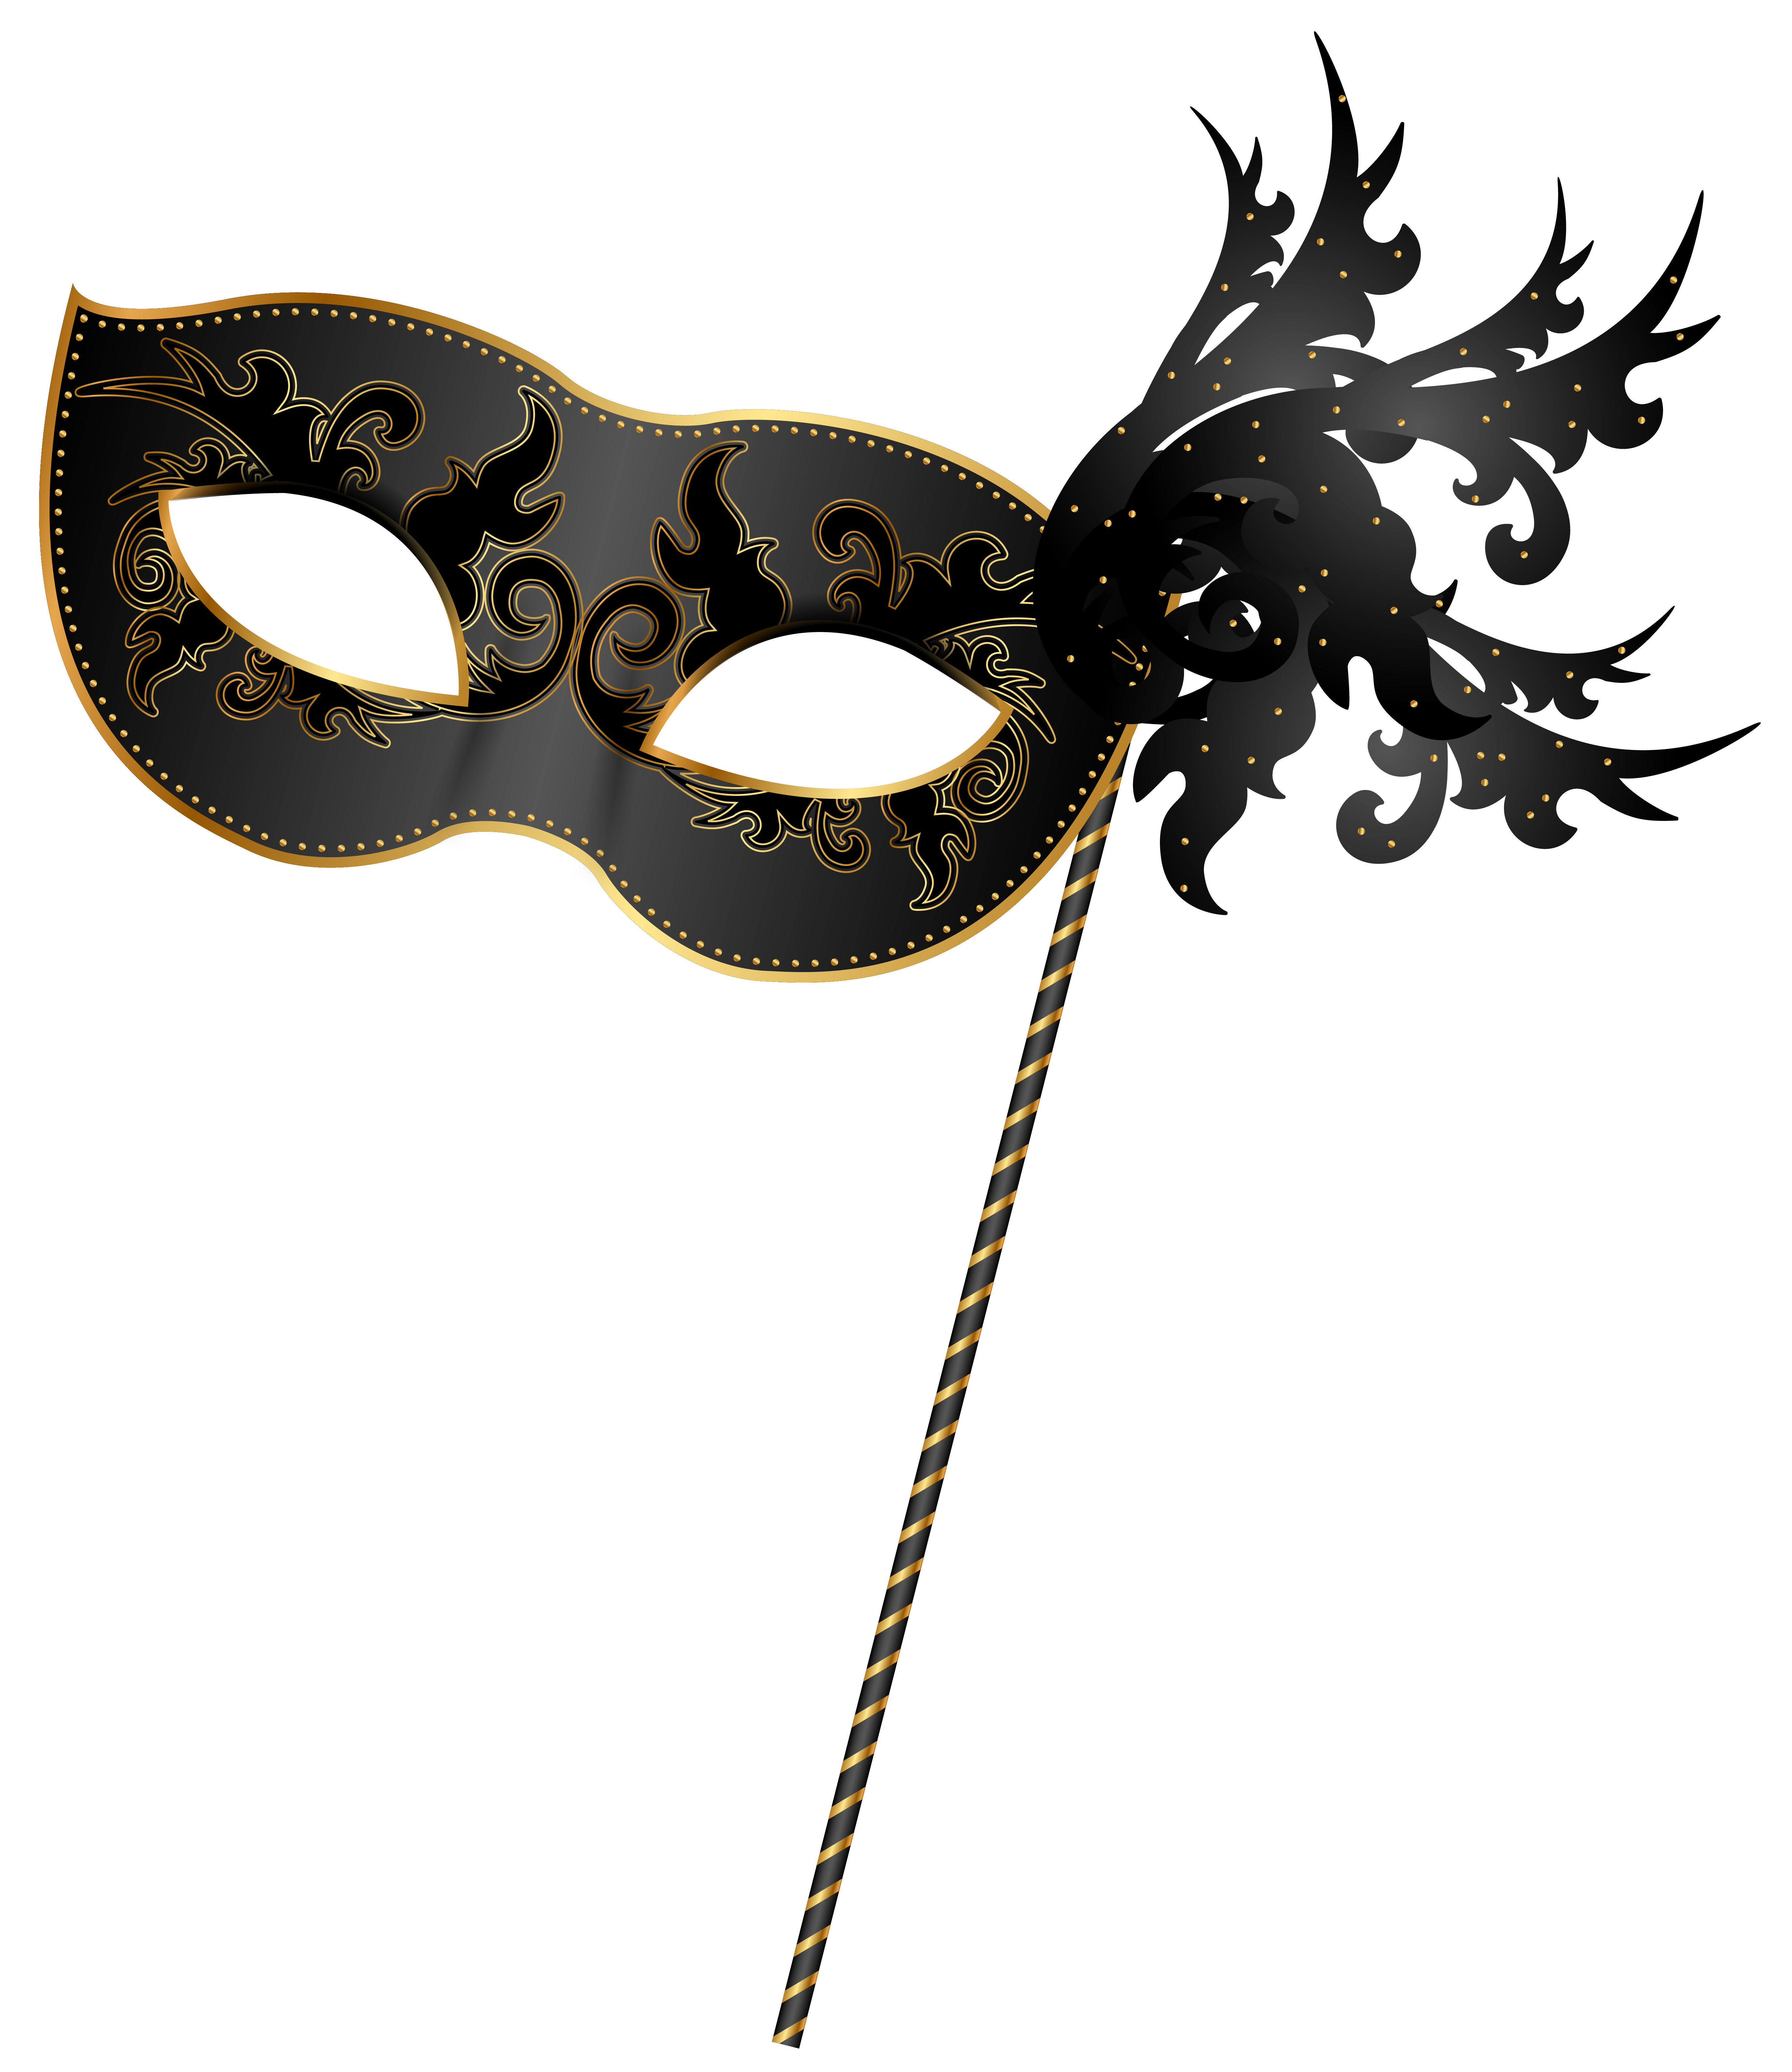 Masquerade mask silhouette png. Carnival clip art image